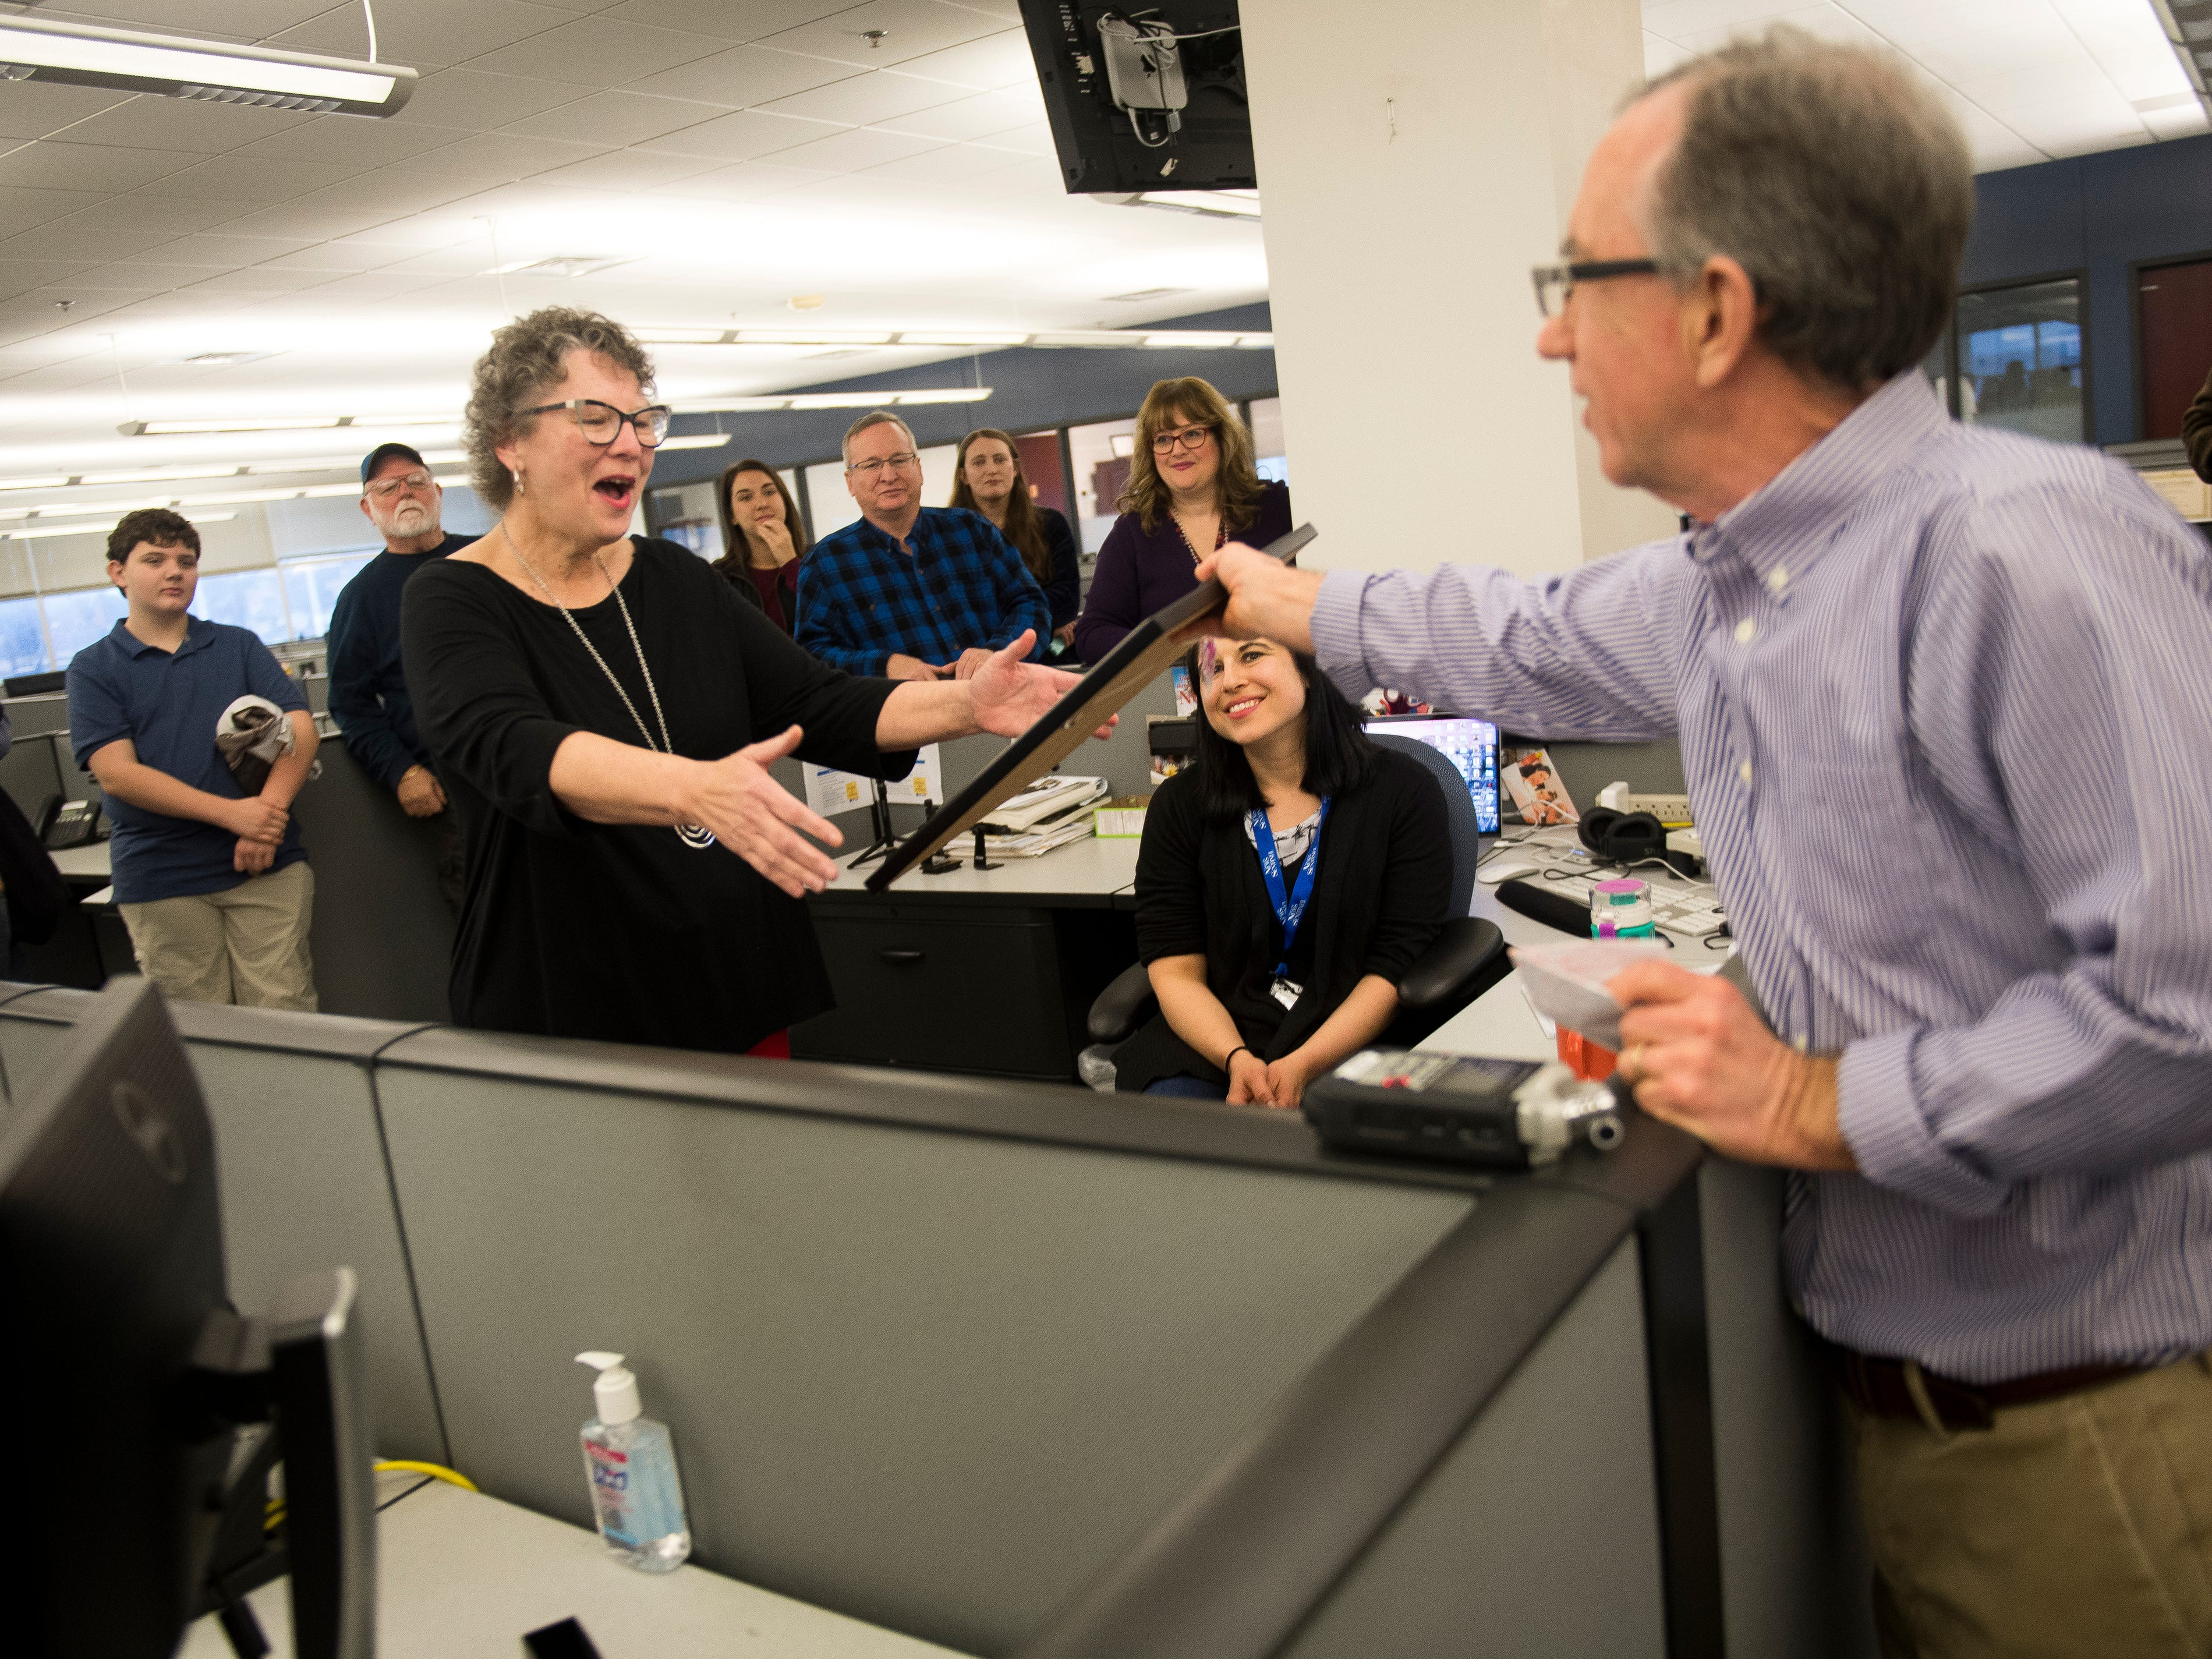 Features writer Mary Constantine, left, is handed a custom Charlie Daniel cartoon by executive editor Jack McElroy, right, during a retirement party on Wednesday, January 2, 2019. The Knoxville News Sentinel celebrated the retirements of Mary Constantine, Jack Lail and Michael Patrick.